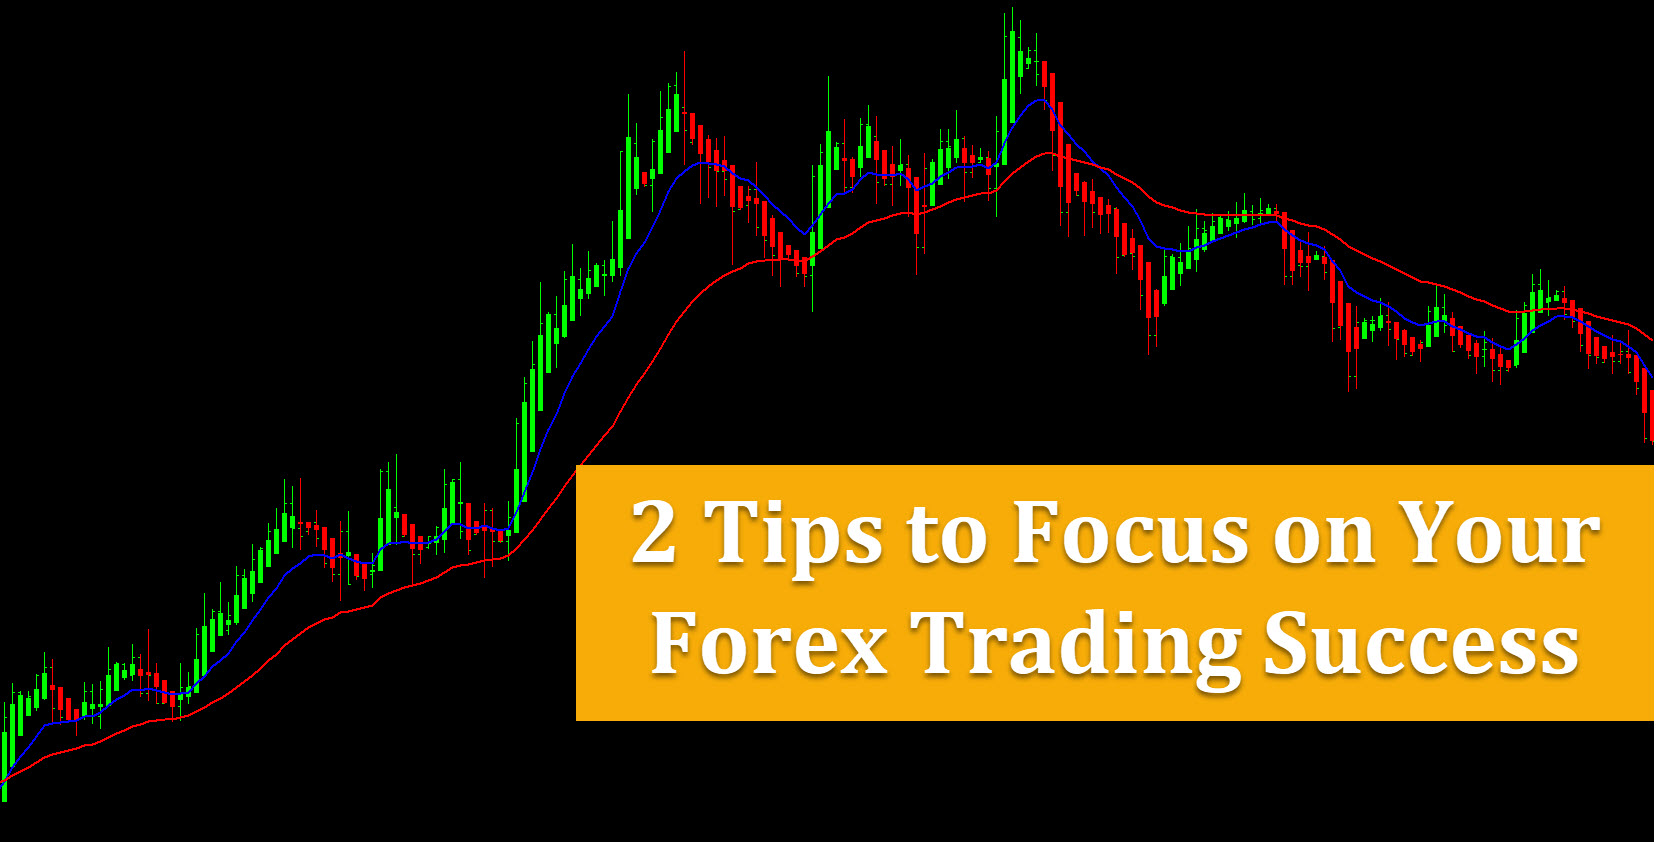 2 Tips to Focus on Your Forex Trading Success